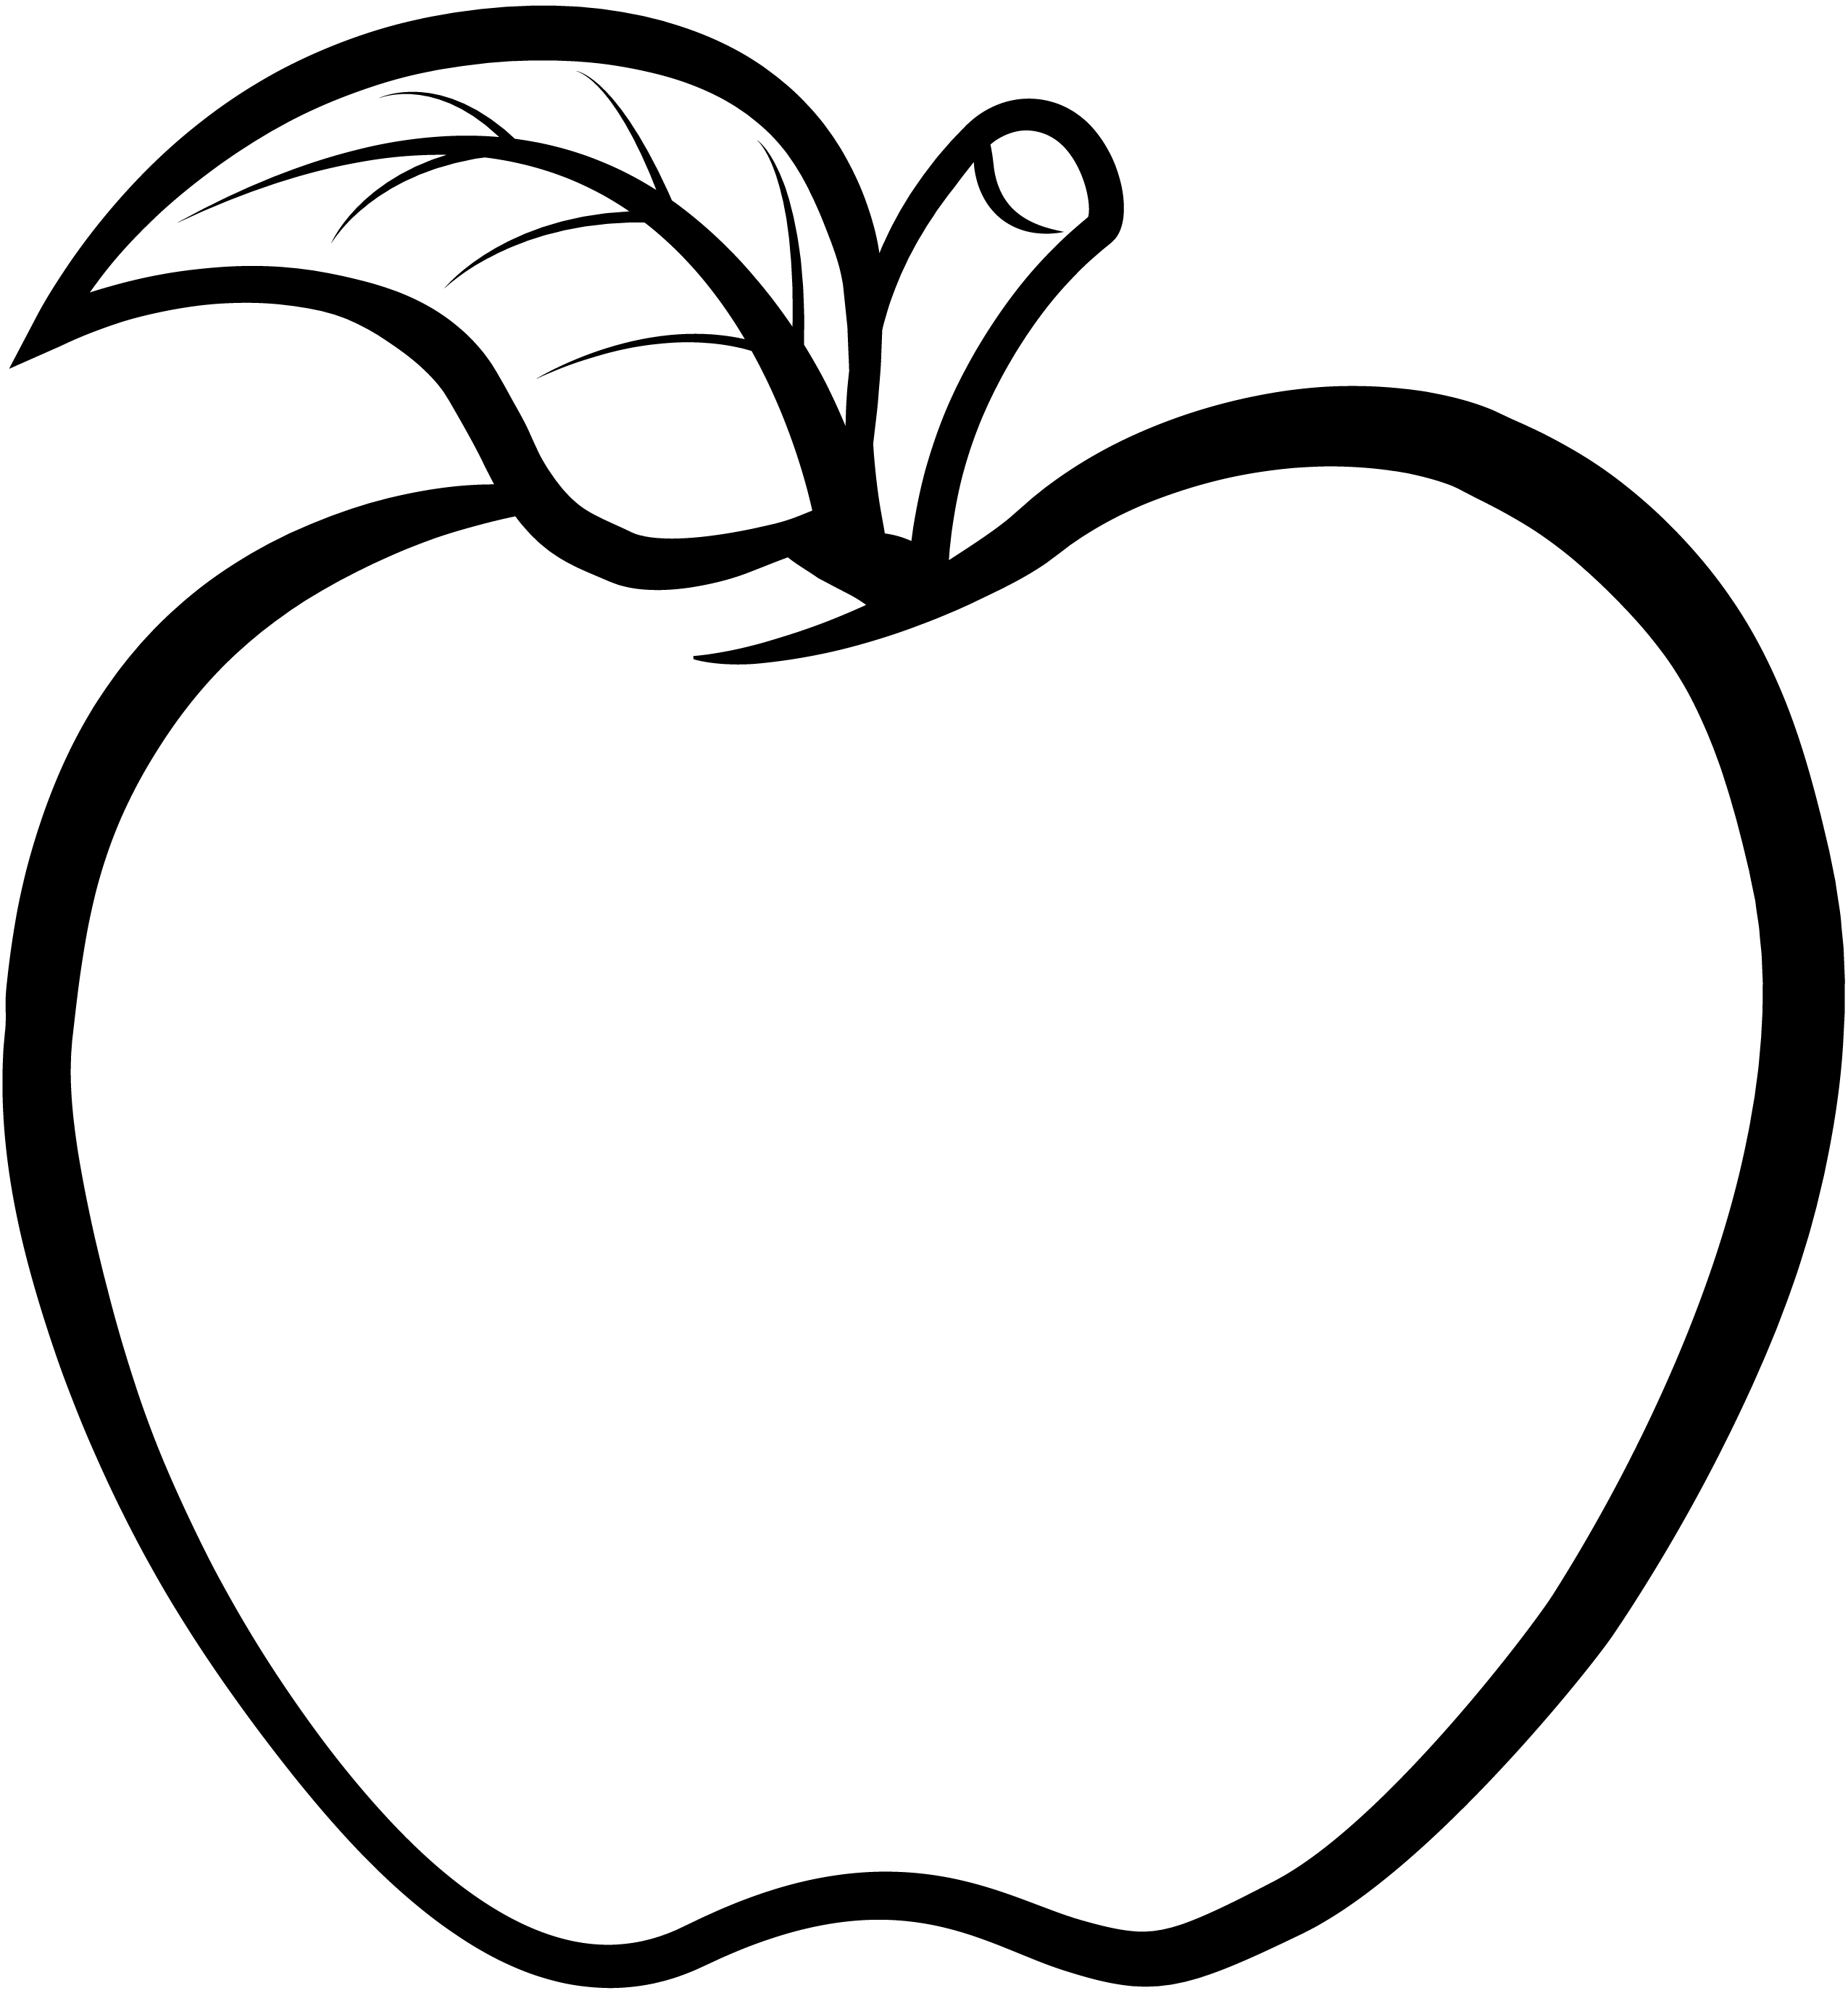 Textbook Clipart Book Apple Picture Textbook